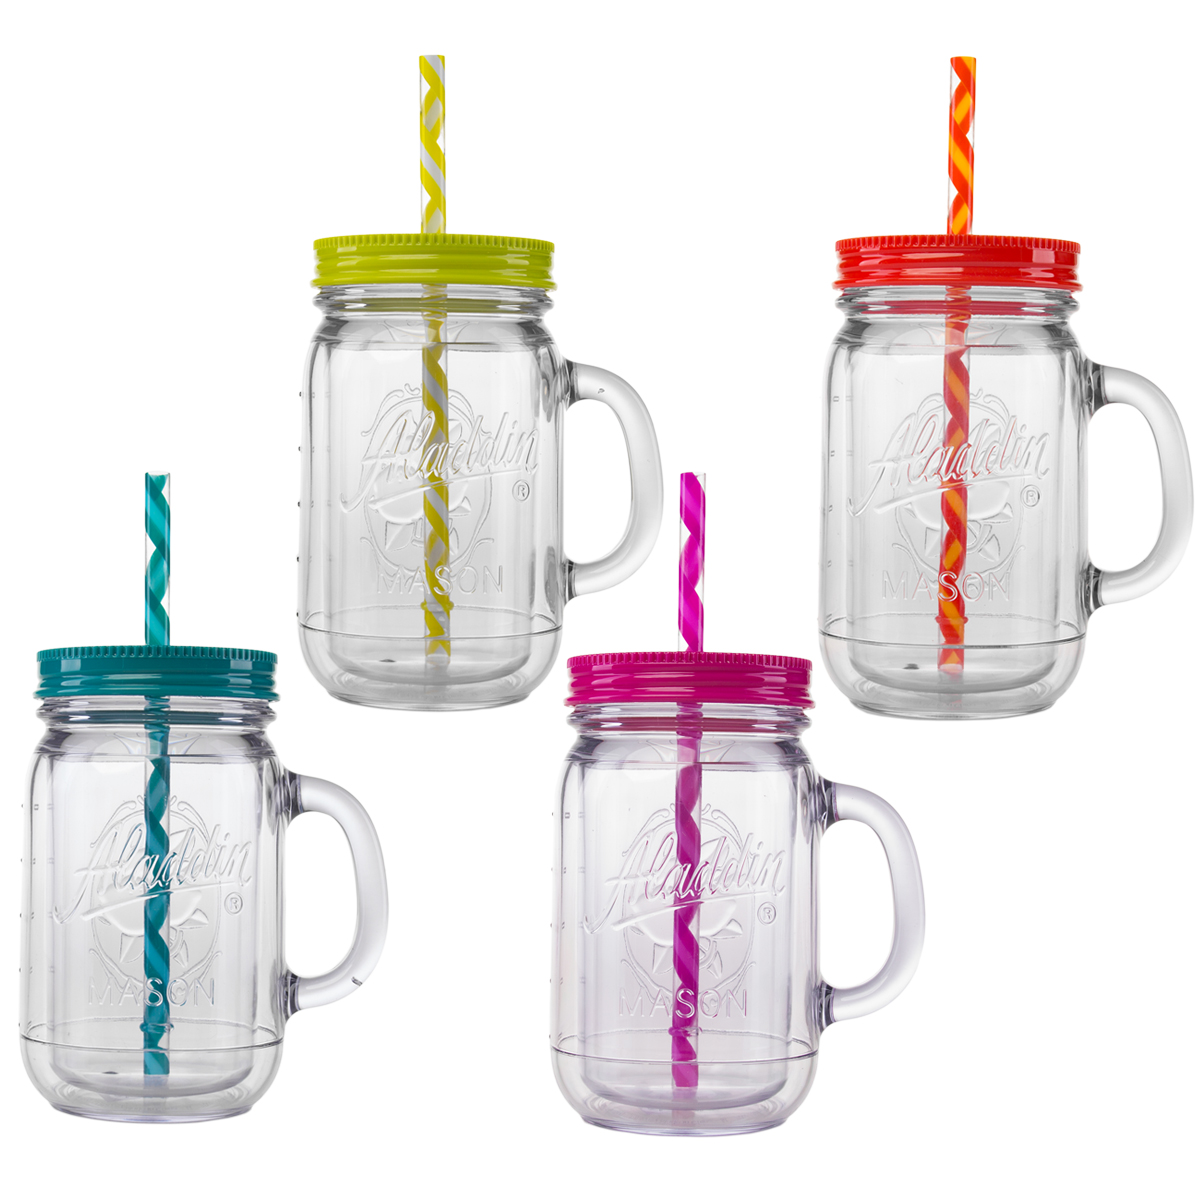 Aladdin 4 Piece 20oz Plastic Mason Jar Set Handled Lidded Tumbler Drinking Cup Mug Glasses & Straws by